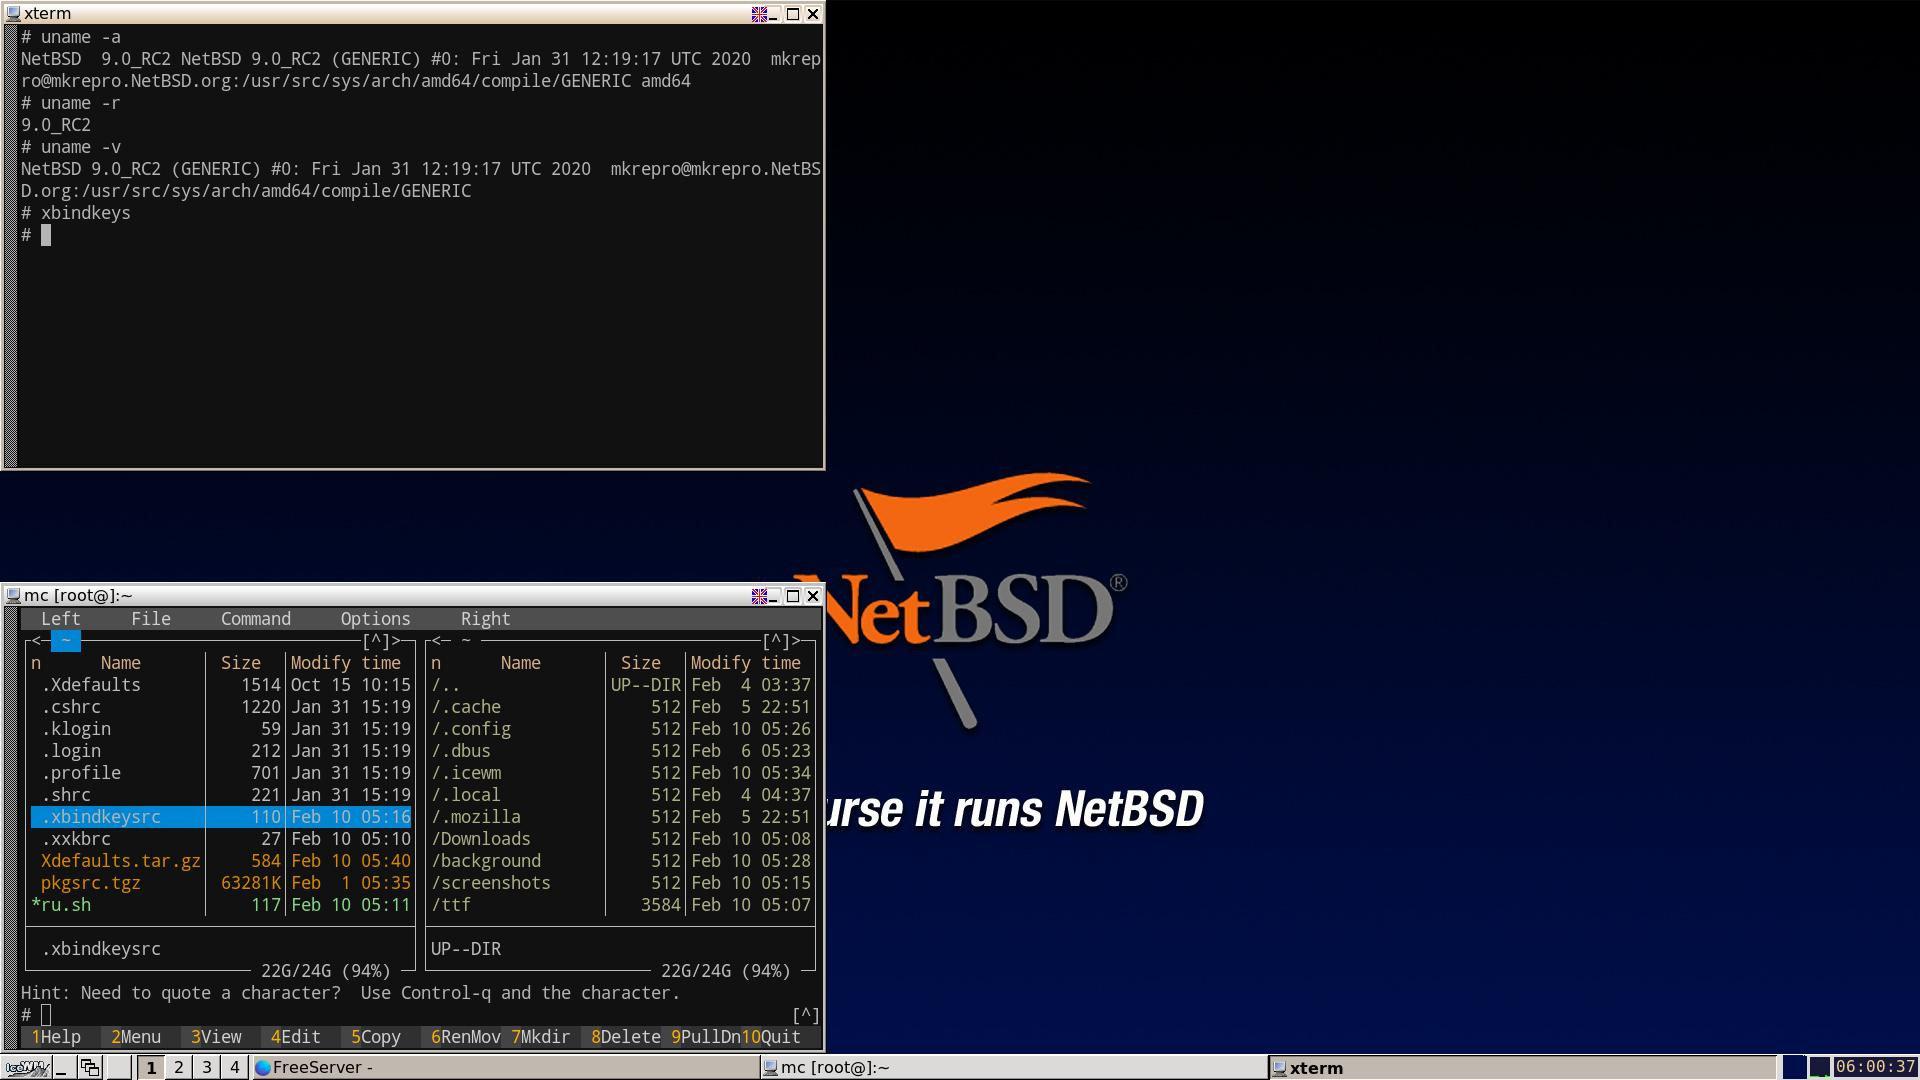 http//freeserver.su/uploads/images/NetBSD/2020-02-10_Feb0038-1920x1080.jpg